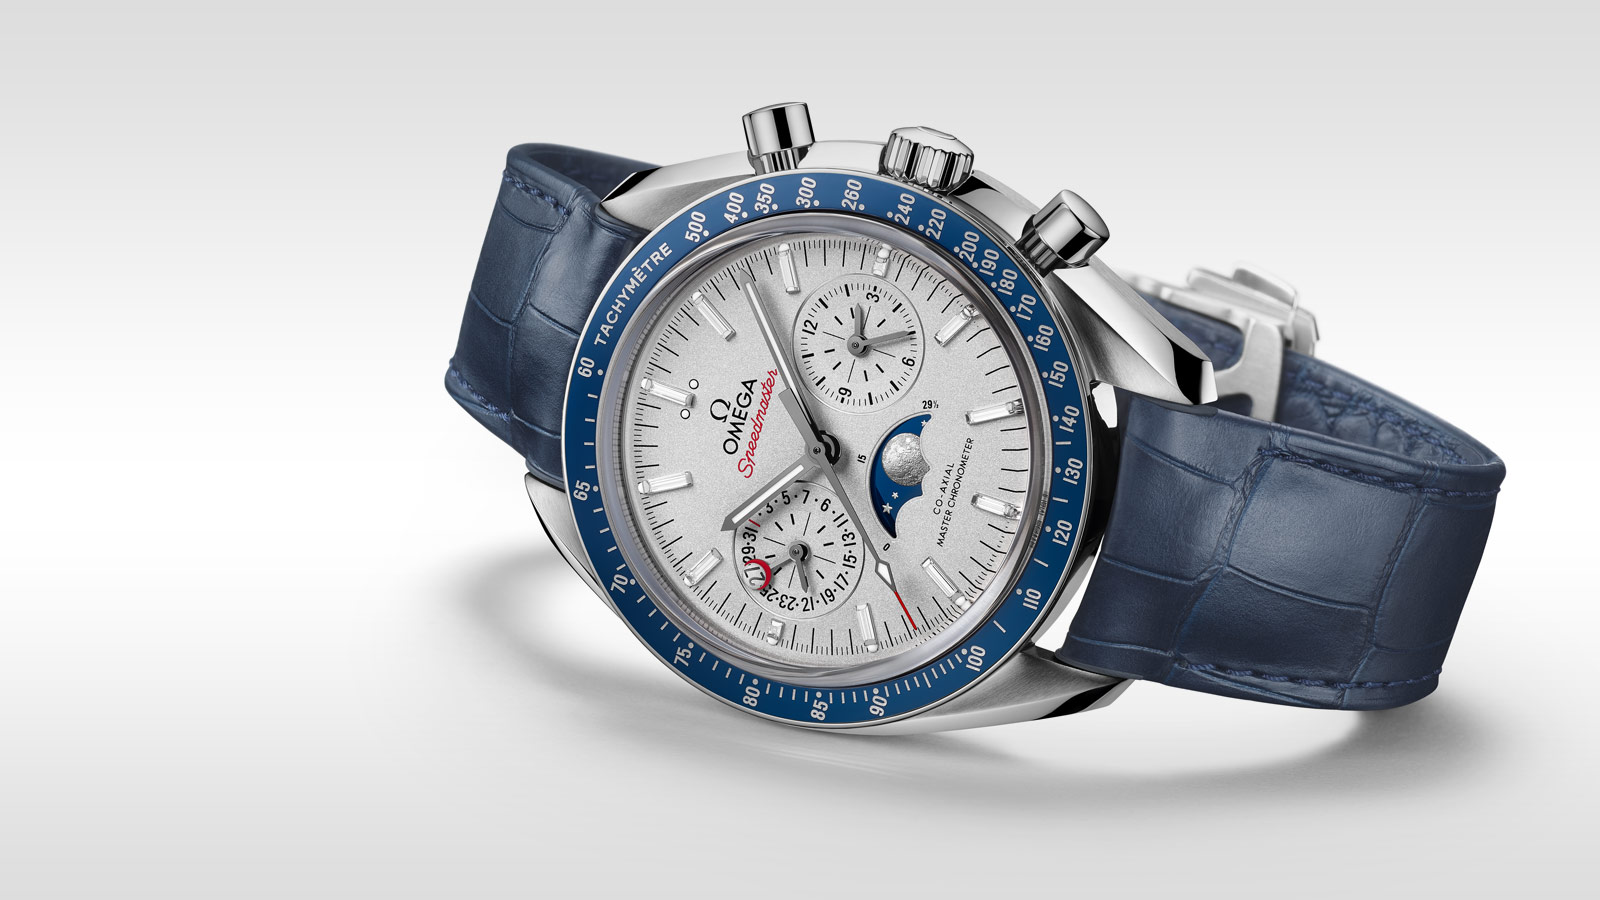 Speedmaster Moonwatch Moonwatch Omega Co‑Axial Master Chronometer Moonphase Chronograph 44,25 mm - 304.93.44.52.99.004 - Anzeigen 1